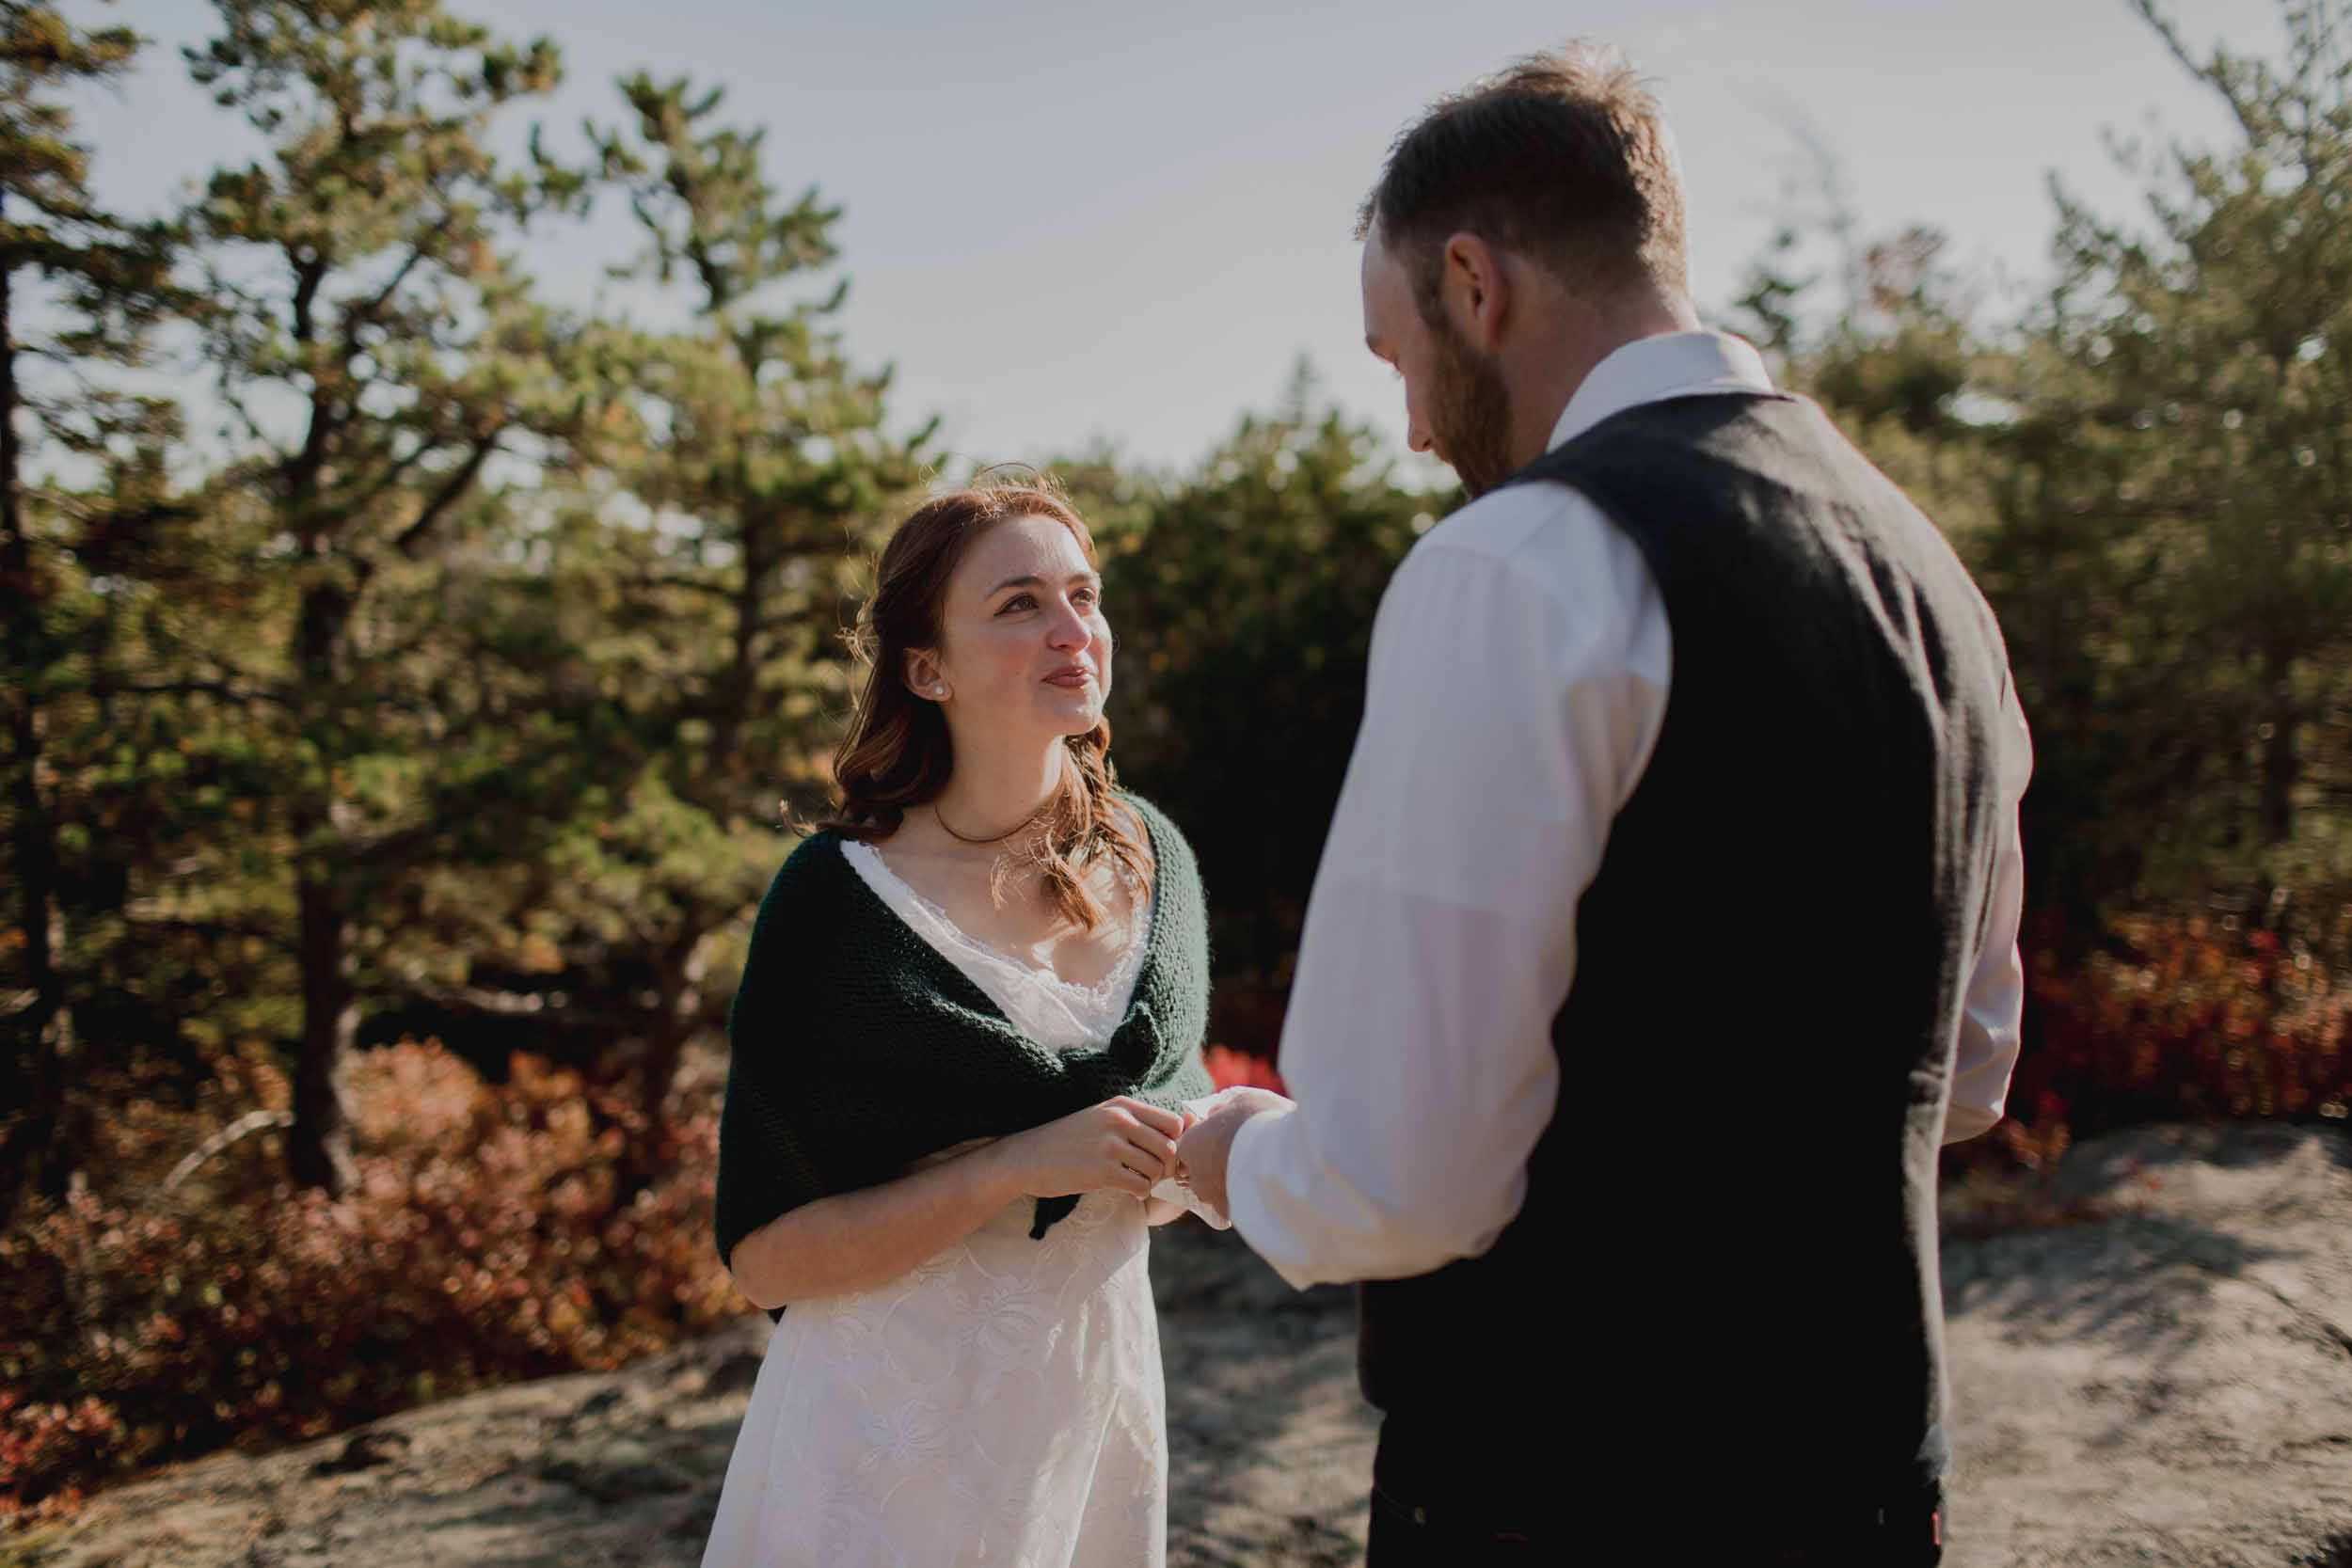 Acadia-National-Park-Elopement49.jpg